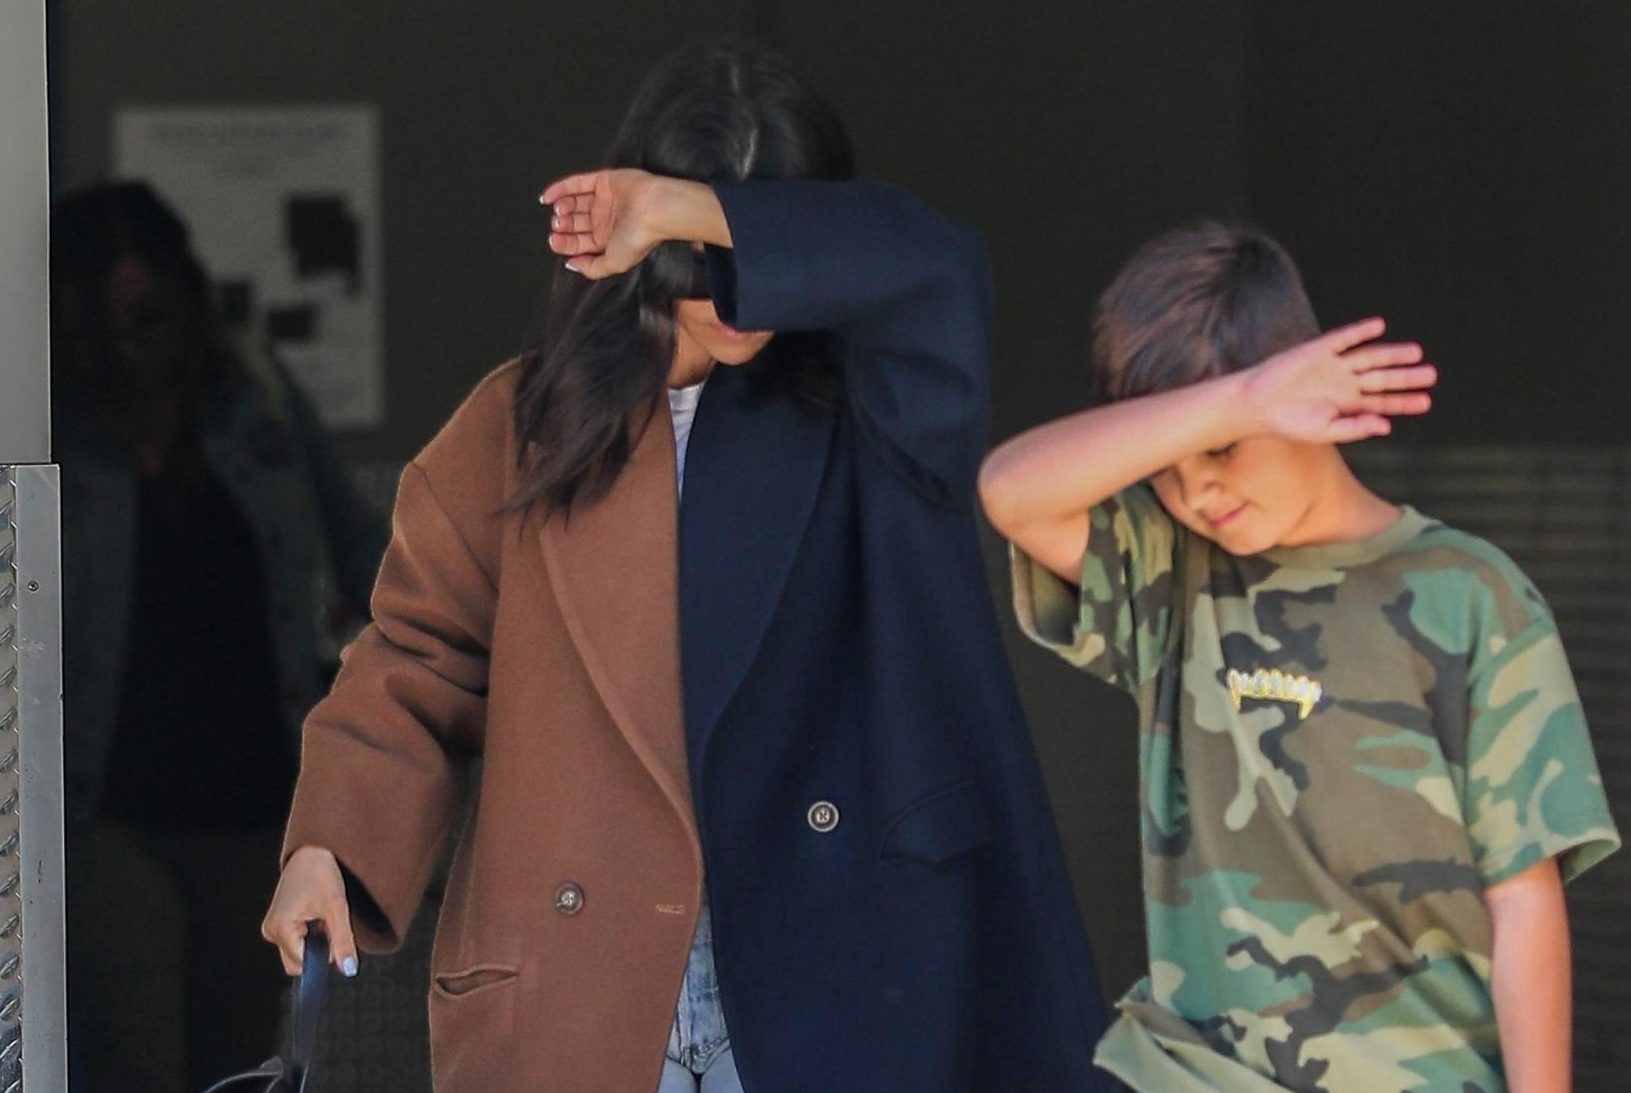 Calabasas, CA - Kourtney Kardashian and Mason hide their faces as they depart from his art class in Calabasas. Pictured: Kourtney Kardashian, Mason Disick BACKGRID USA 10 APRIL 2019 BYLINE MUST READ: RAAK / BACKGRID USA: +1 310 798 9111 / usasales@backgrid.com UK: +44 208 344 2007 / uksales@backgrid.com *UK Clients - Pictures Containing Children Please Pixelate Face Prior To Publication*